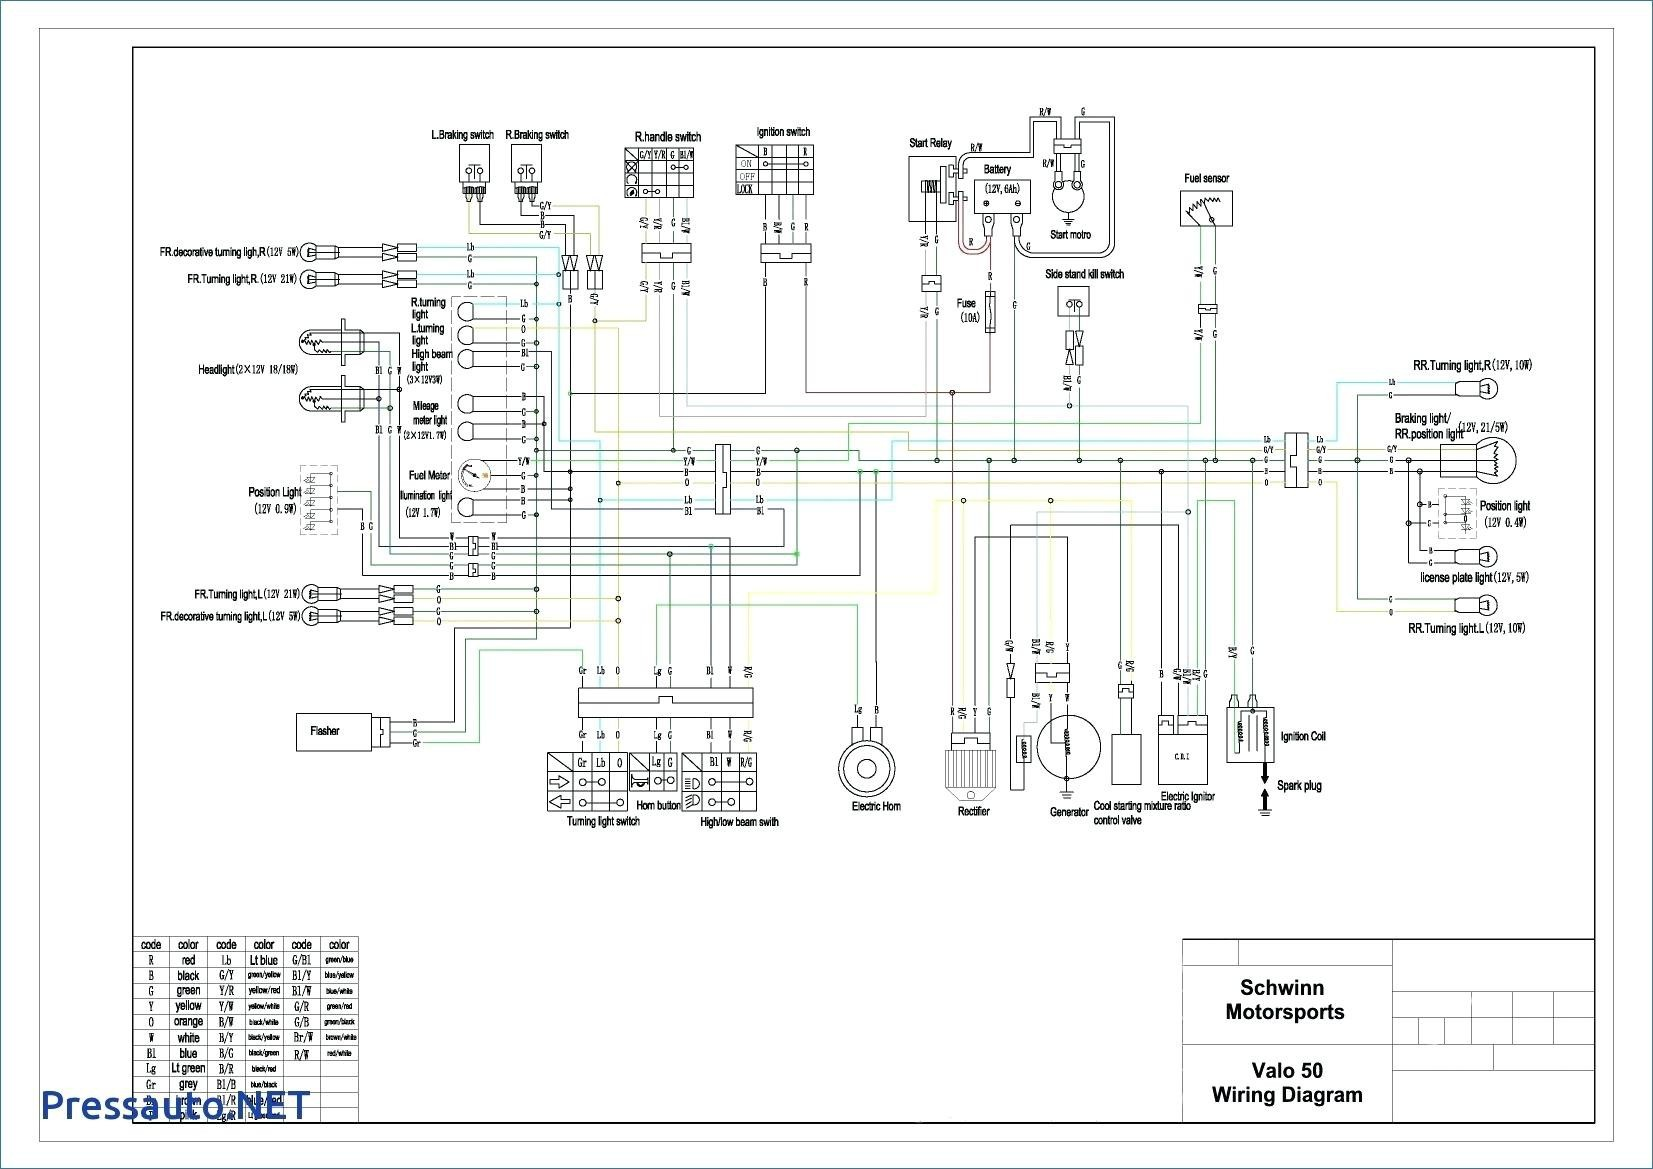 hight resolution of vip 722 schematic circuit diagram wiring diagram numberdish 722k wiring diagram 14